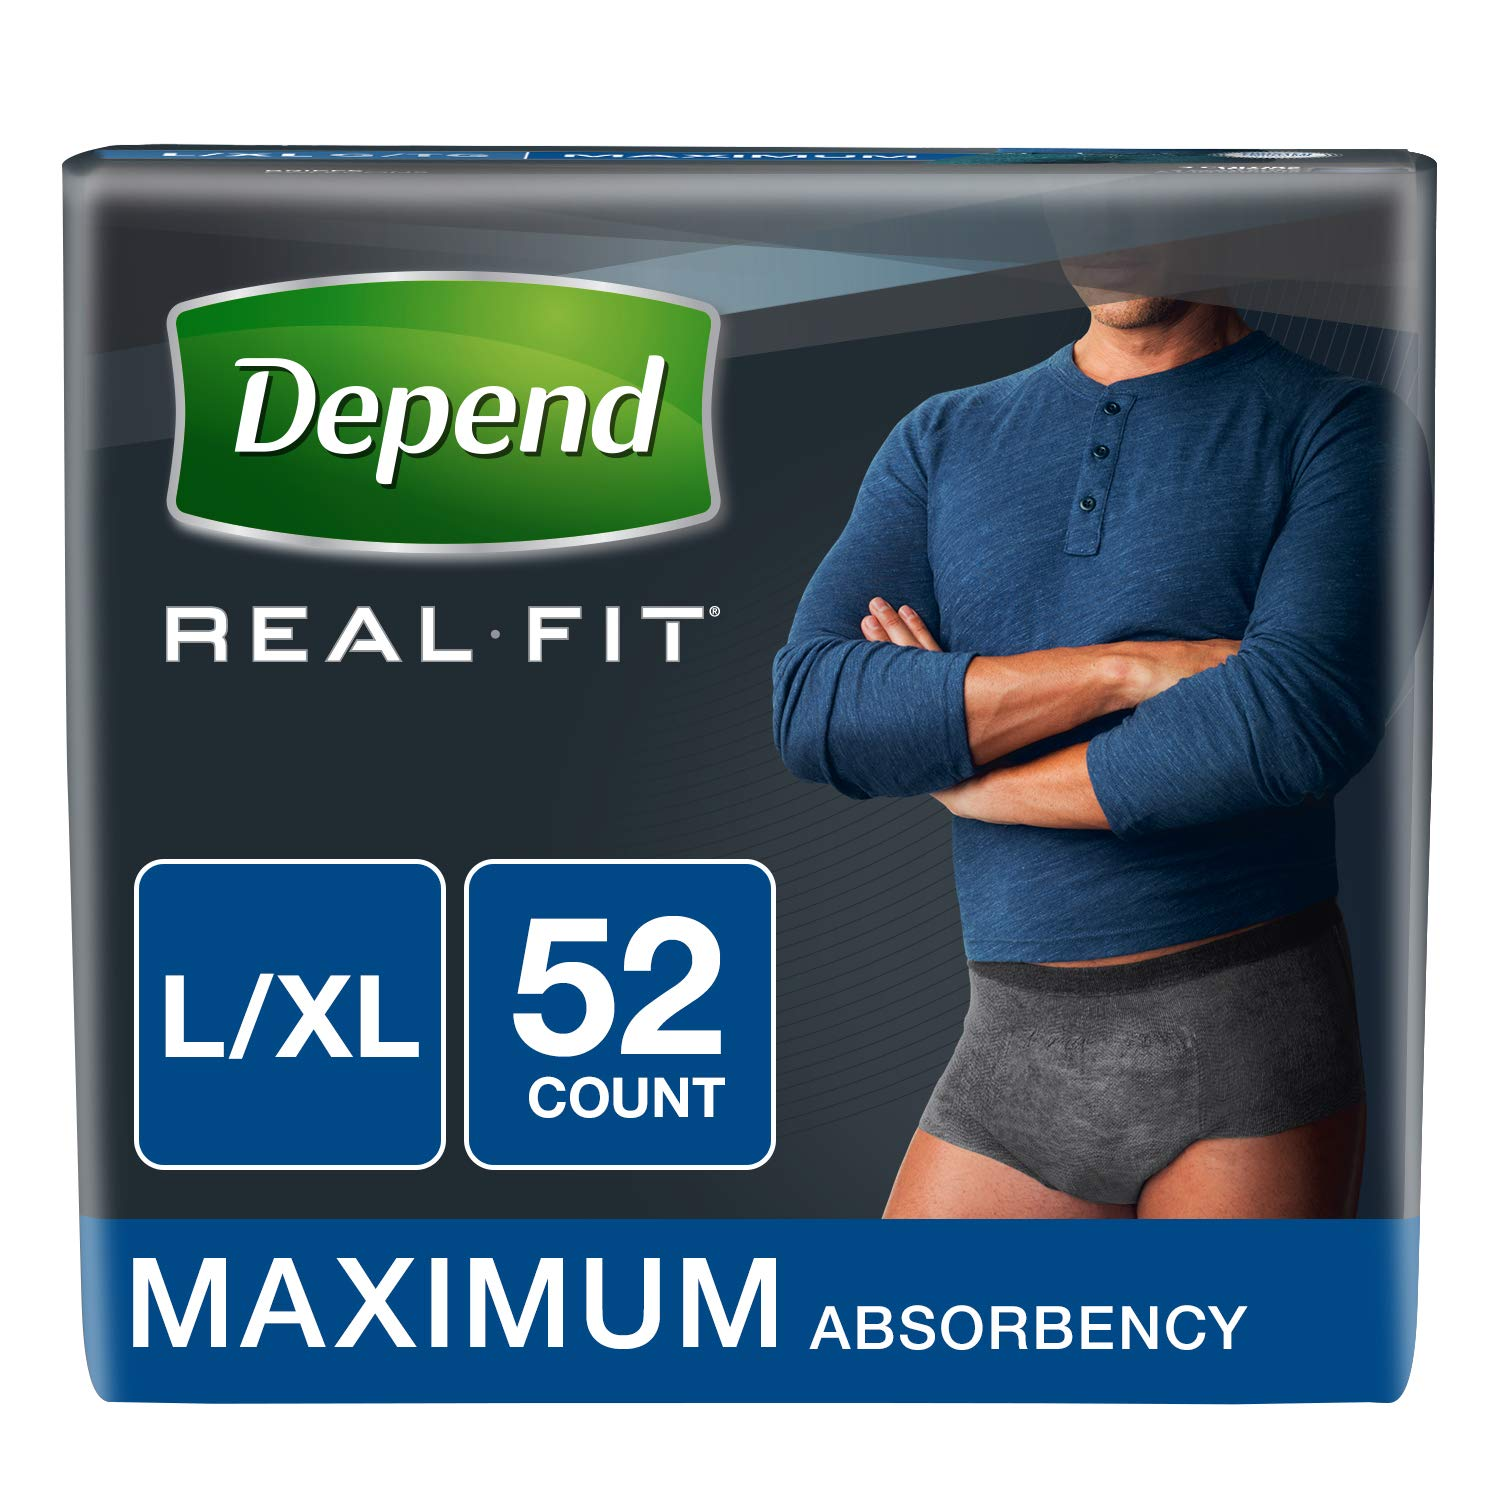 Depend Real Fit Incontinence Underwear for Men, Maximum Absorbency, L/XL, Black, 52 Count (Packaging May Vary) by Depend